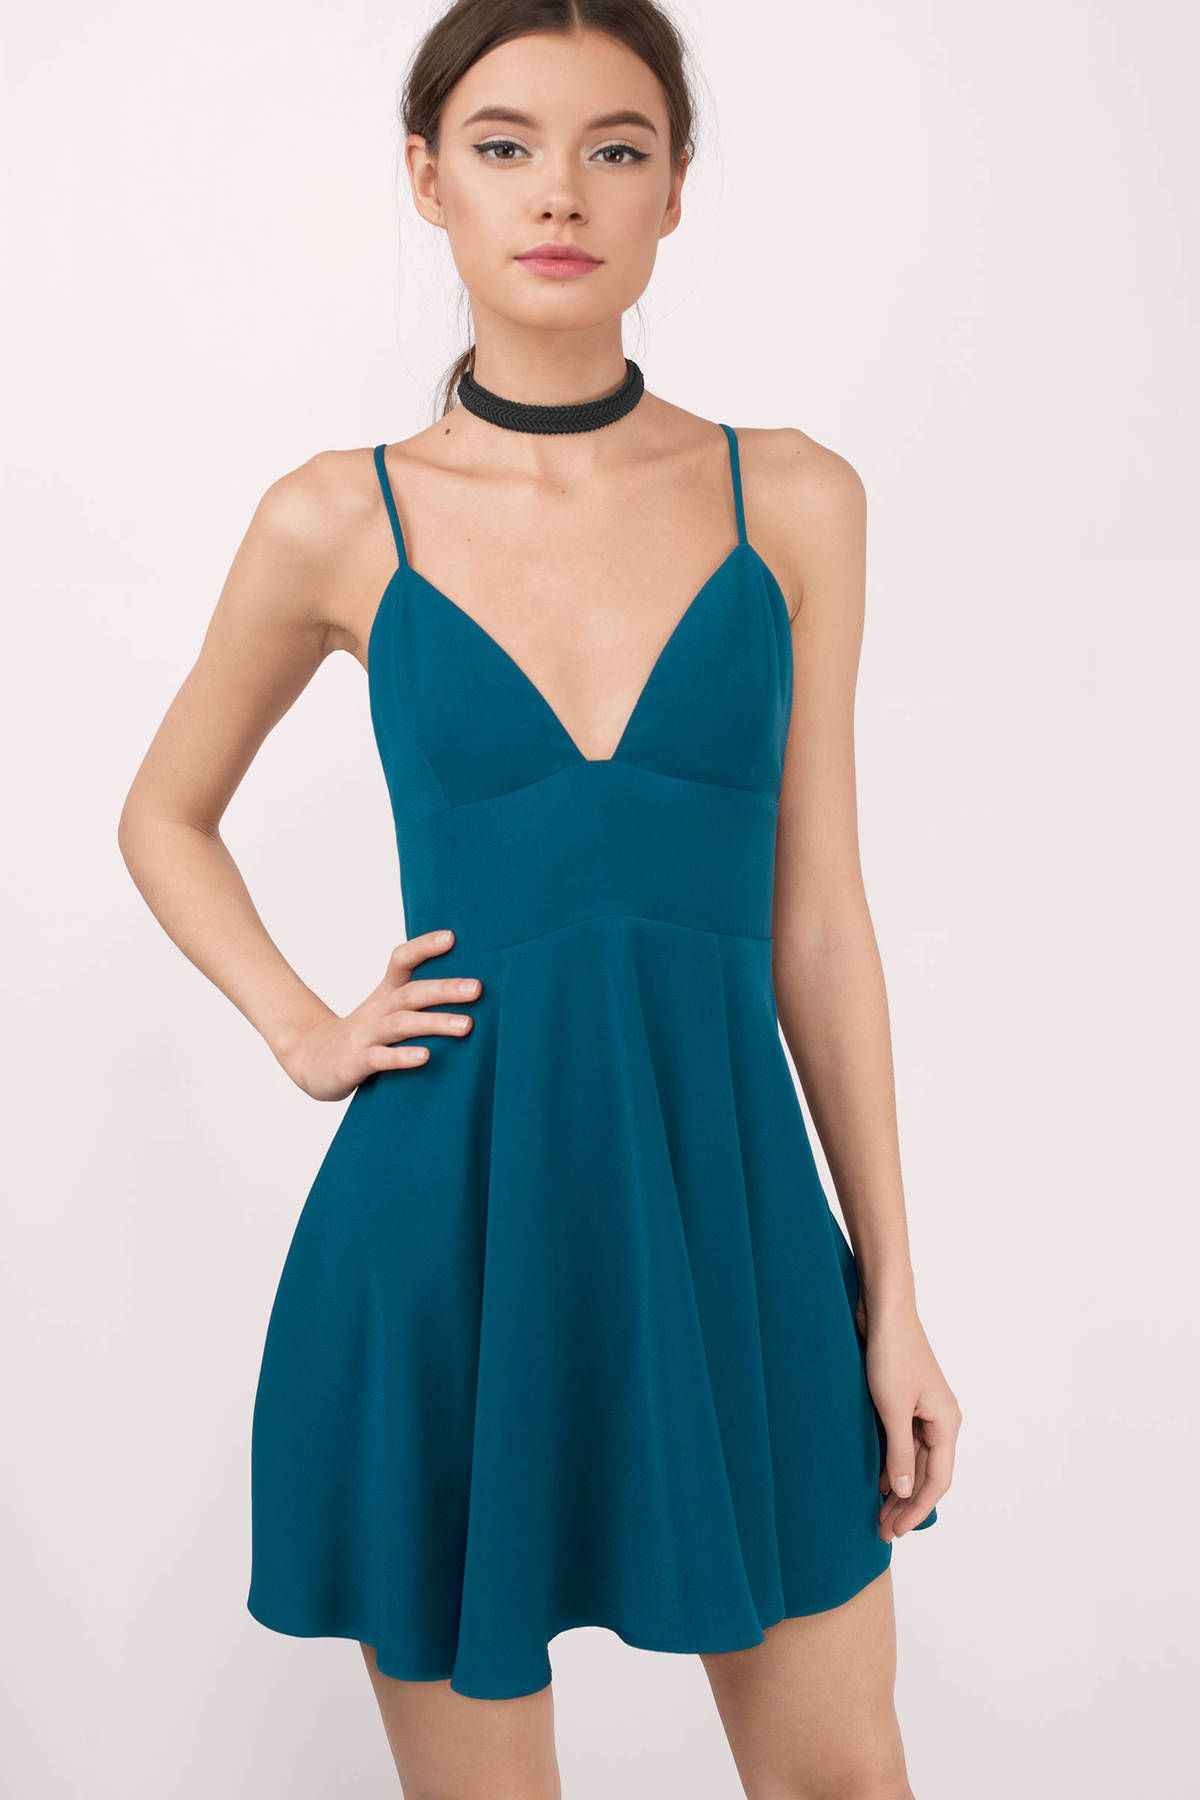 42++ What is a skater dress ideas in 2021